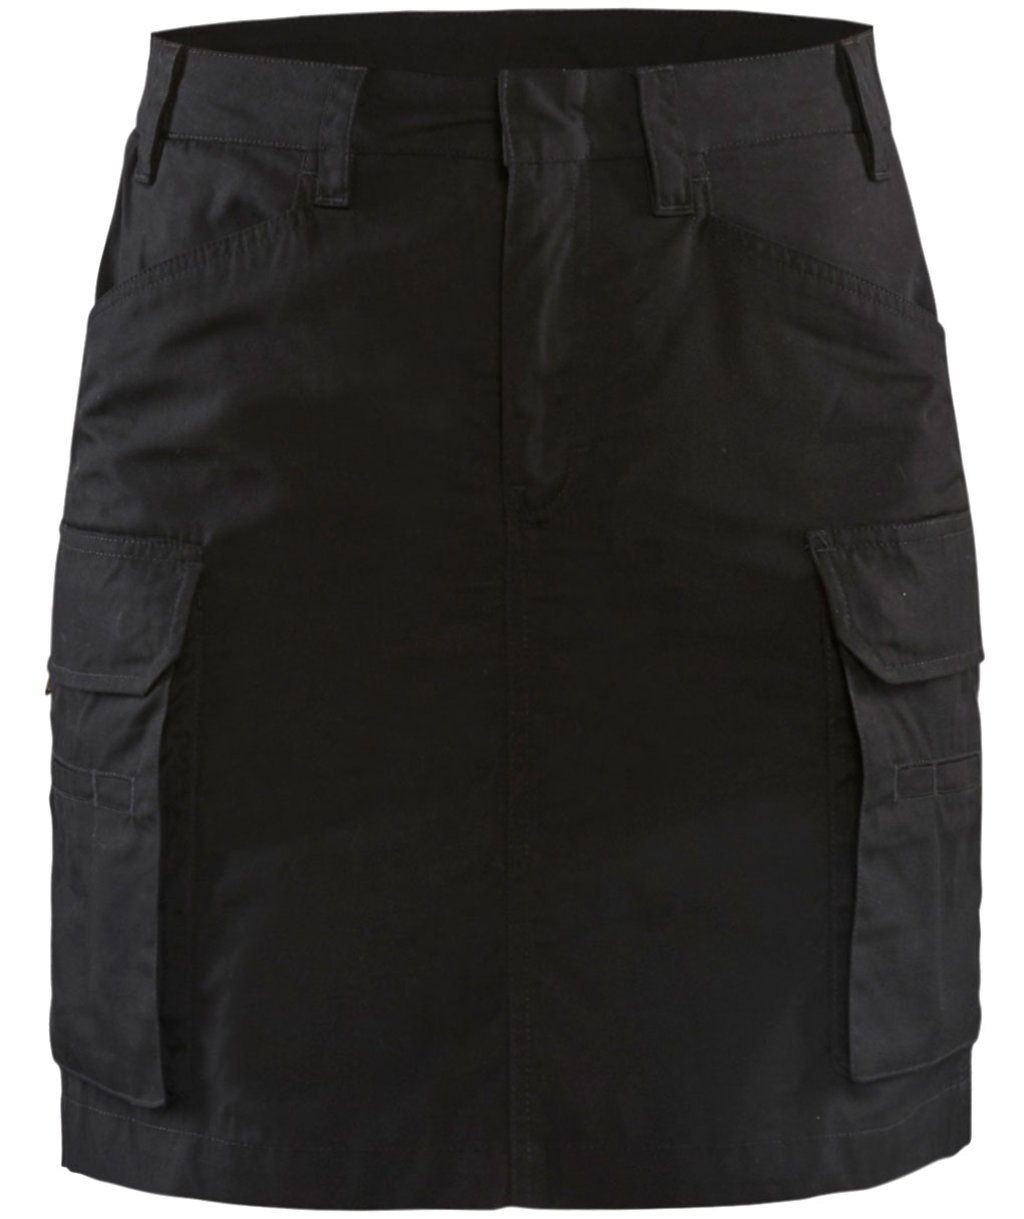 Blåkläder stretch women's skirt, Black